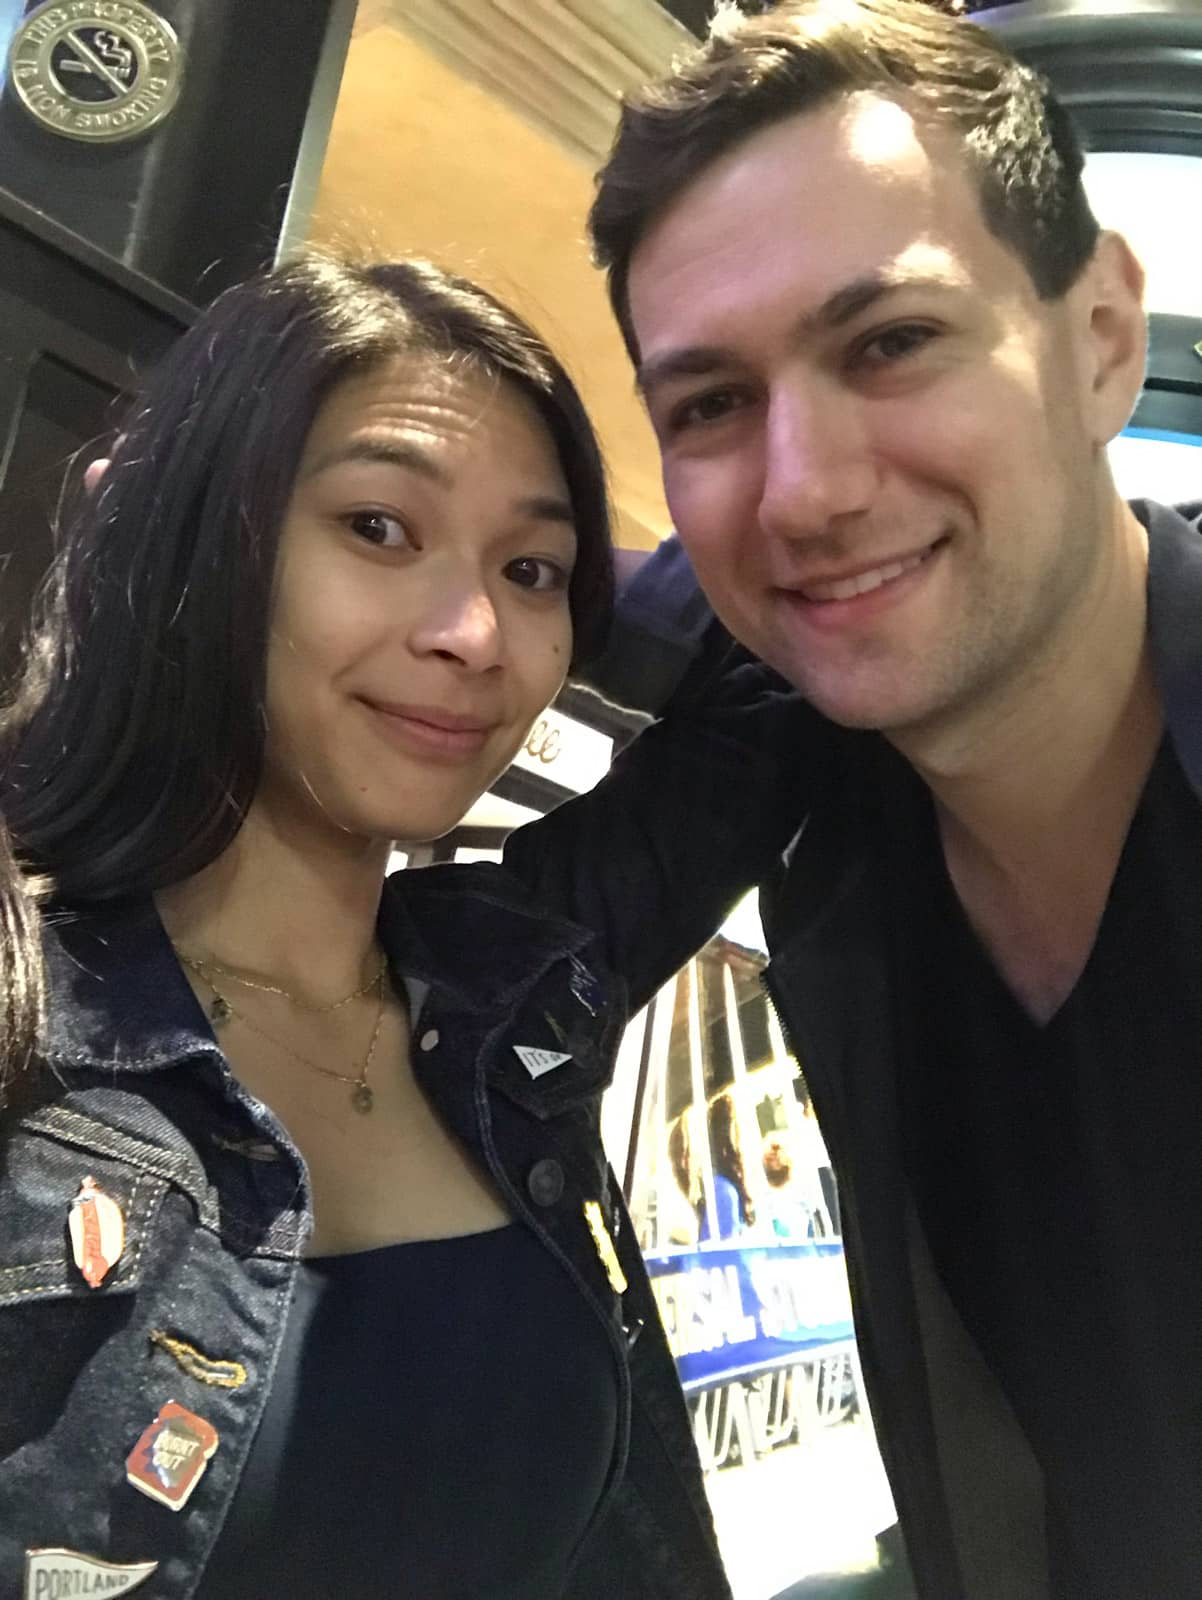 A man and woman taking a selfie and smiling. The woman is wearing a denim jacket with enamel pins and the man is wearing a dark v-neck shirt. The photo is taken in low lighting.